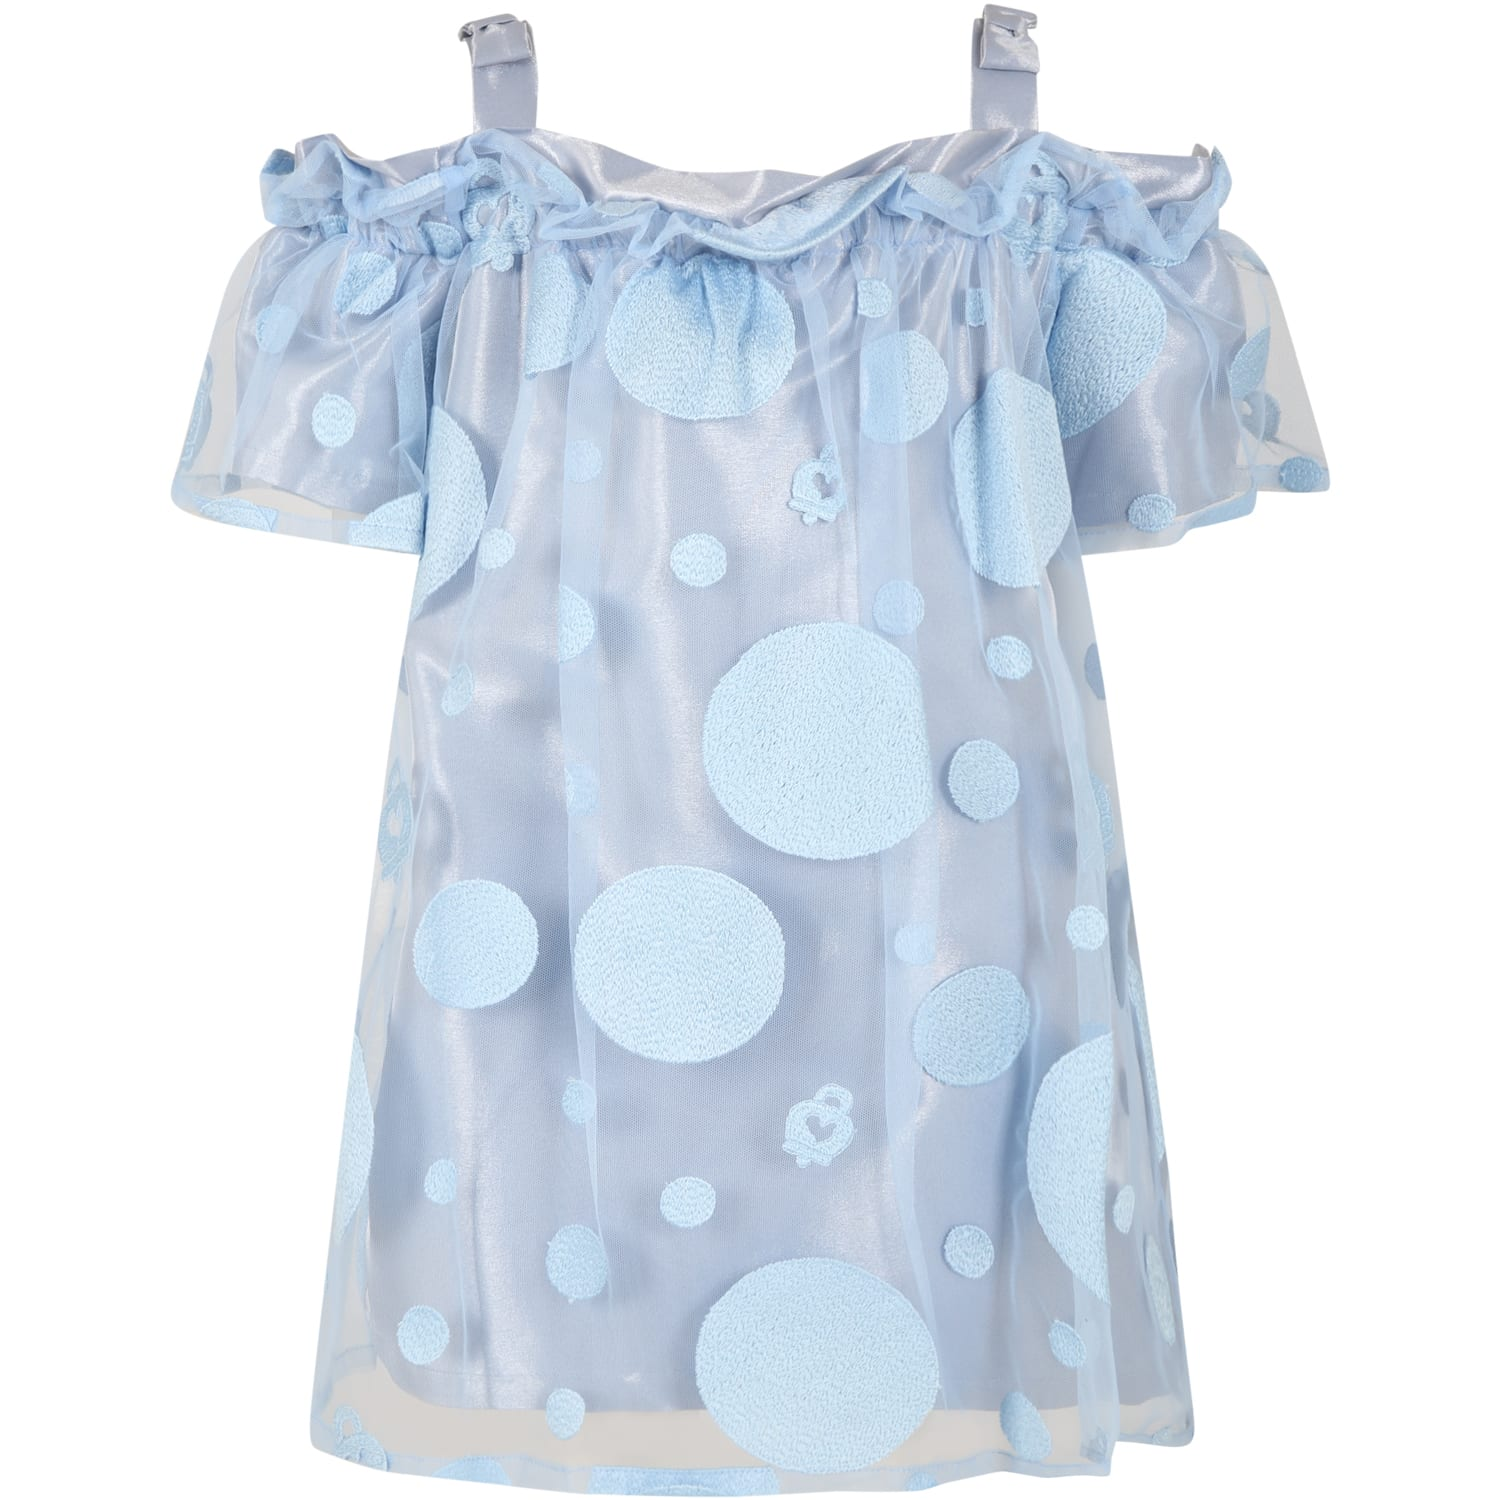 Buy Simonetta Light Blue Dress For Girl With Embroidery online, shop Simonetta with free shipping